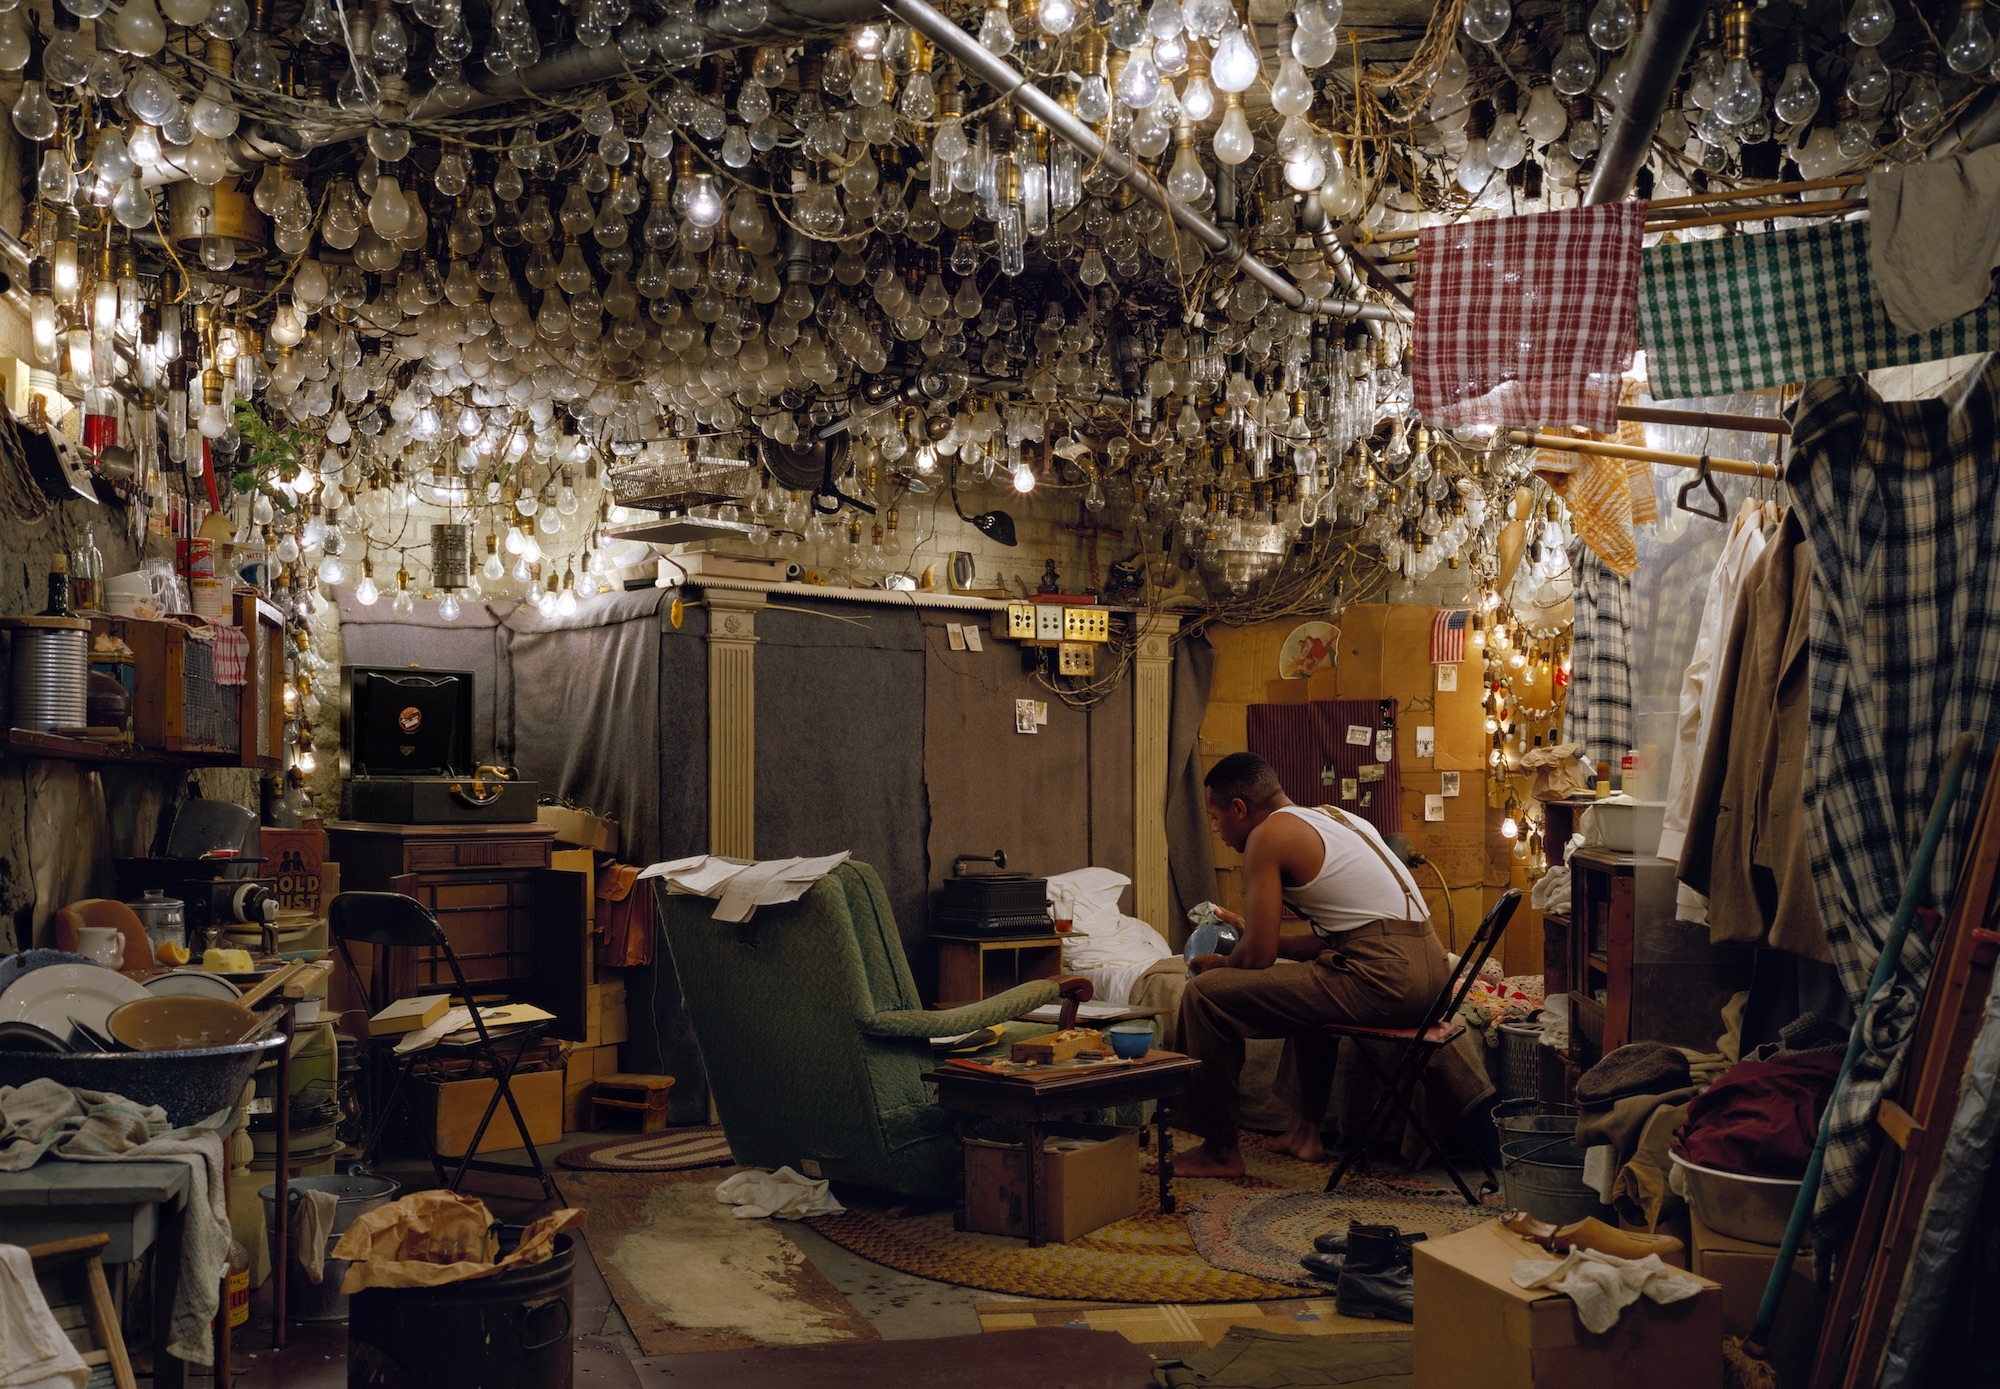 Jeff Wall,  After 'Invisible Man' by Ralph Ellison, the Prologue , 1999-2001, transparency in lightbox, 174.0 x 250.5 cm, Courtesy of the artist